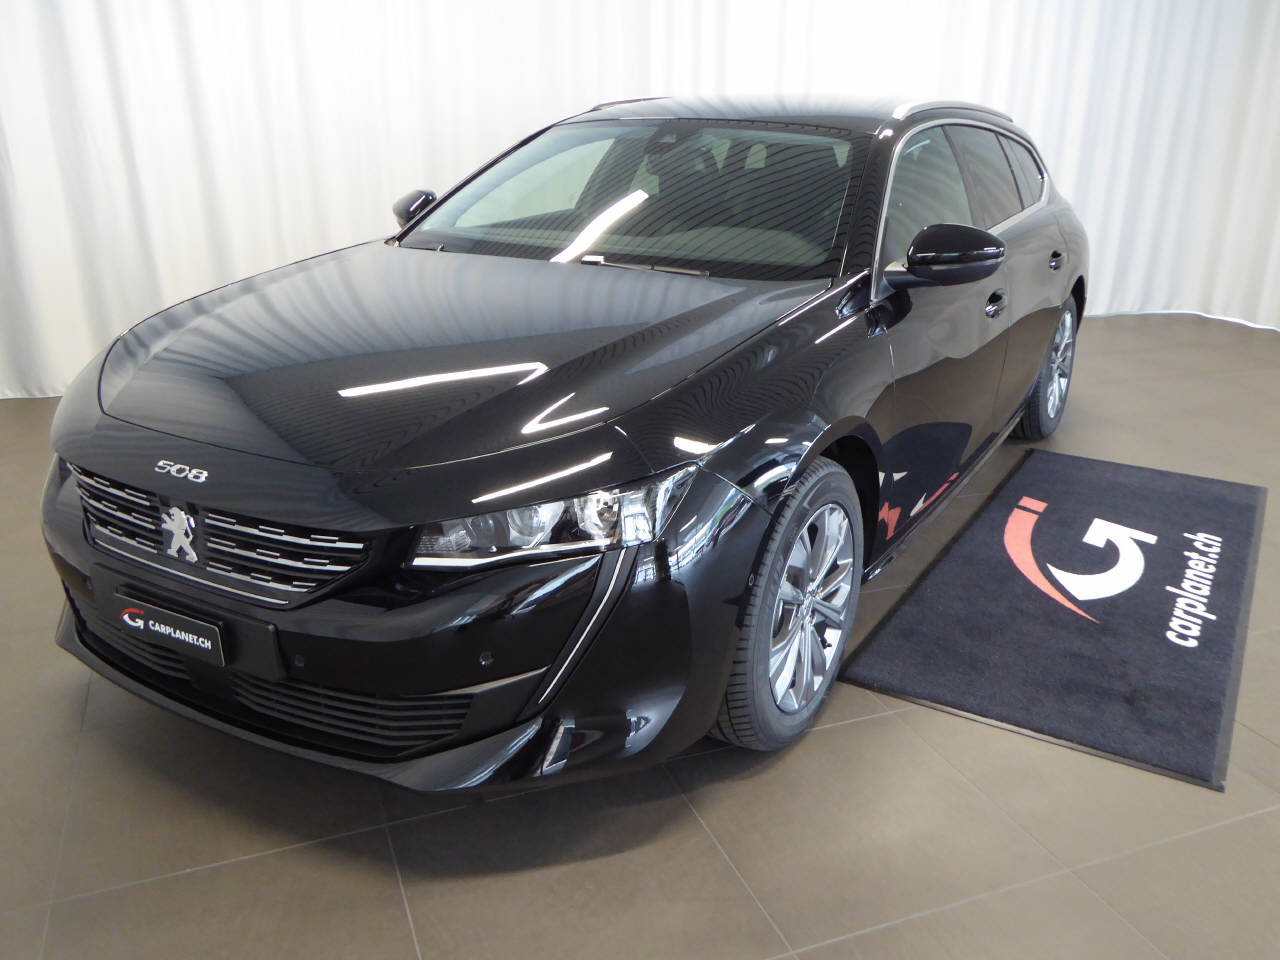 estate Peugeot 508 SW 2.0 BlueHDi 180 Allure